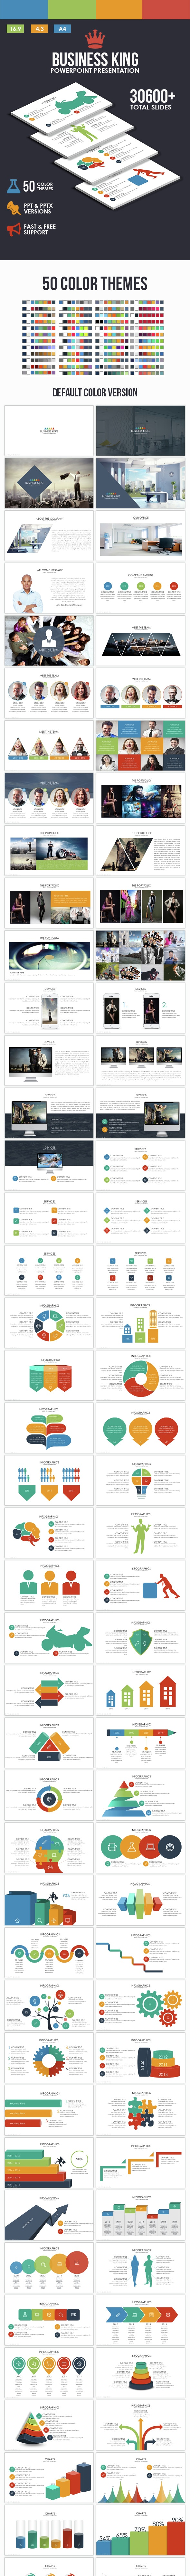 Business King Powerpoint Presentation Template - Business PowerPoint Templates